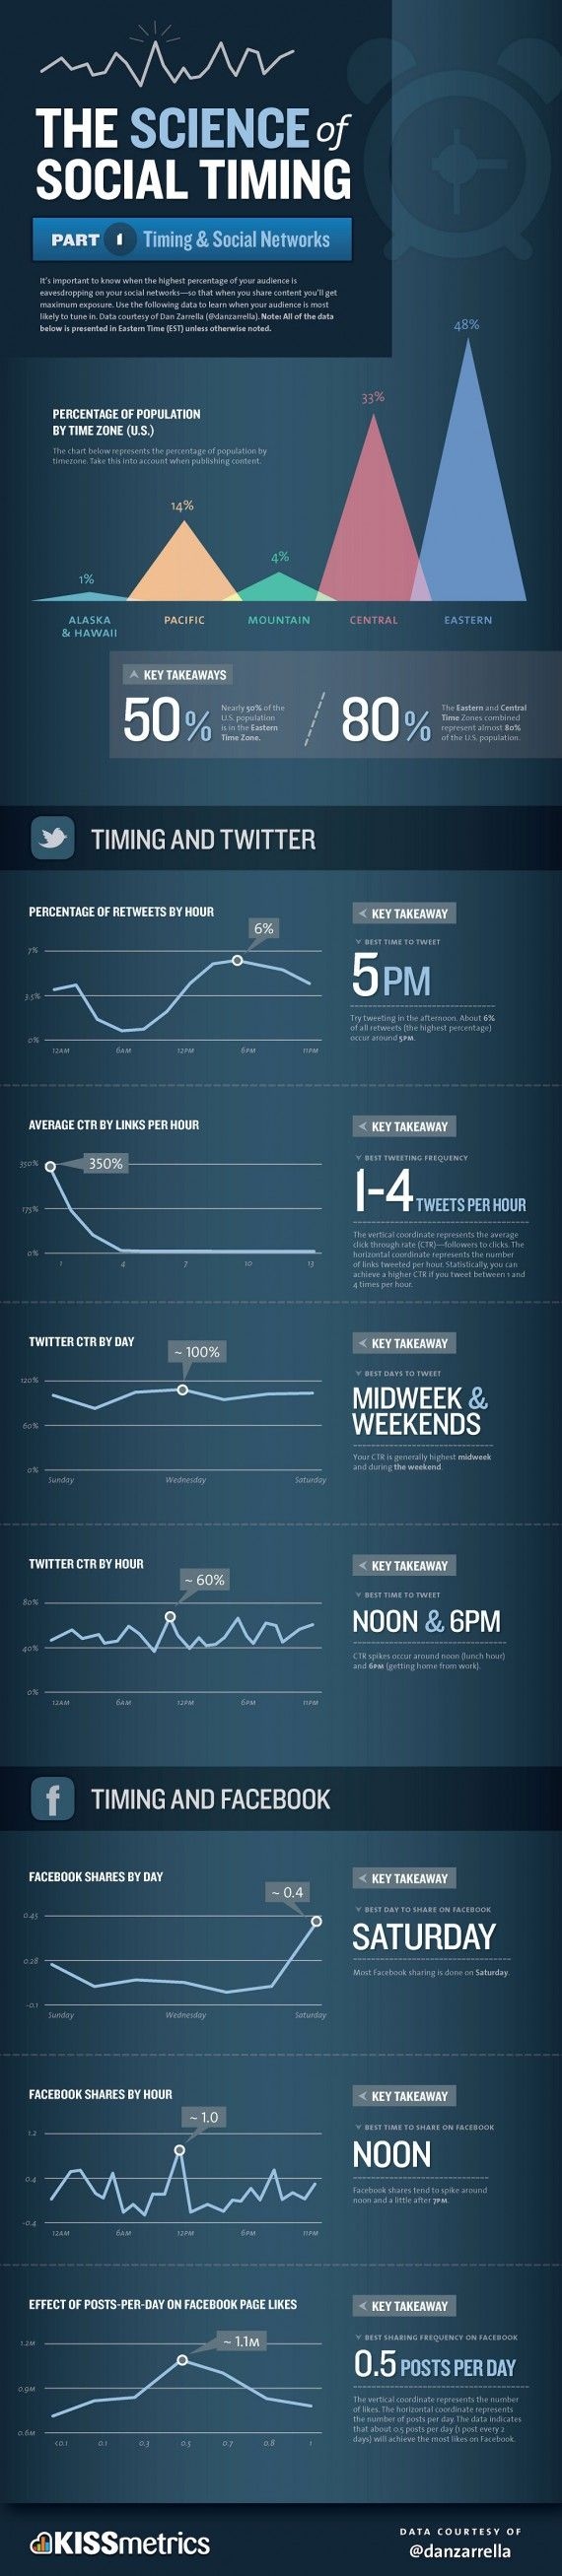 Social Timing: When to Tweet & Post on Facebook.